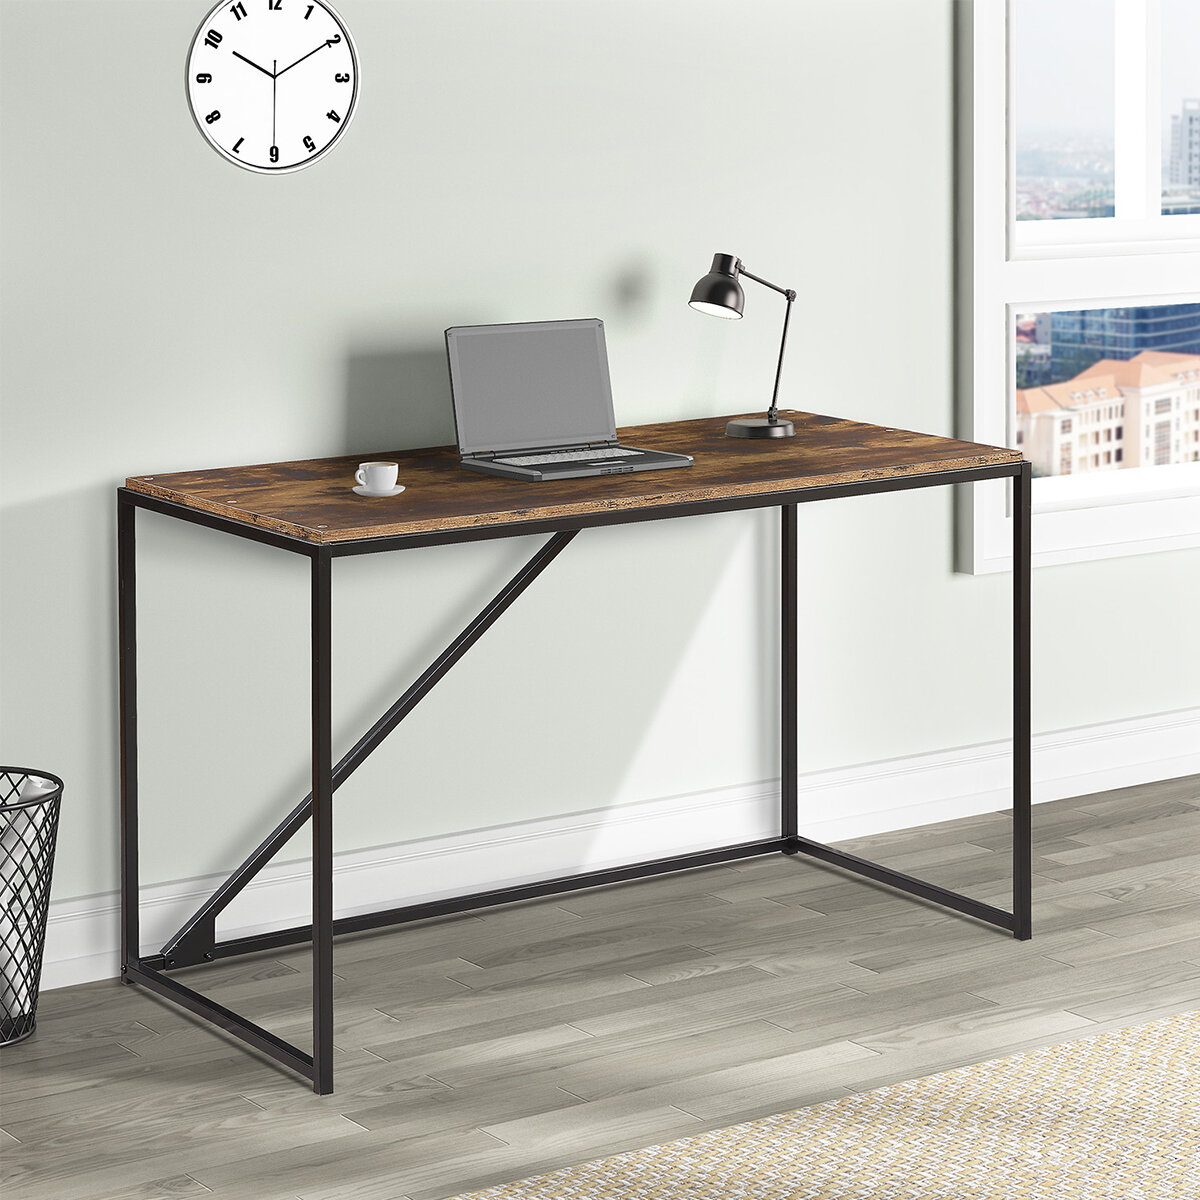 Image of: 17 Stories Home Office 46 Inch Computer Desk Small Desk Home Office Study Desk Metal Frame Modern Simple Laptop Table Easy Assembly Industrial Style Brown Wayfair Ca